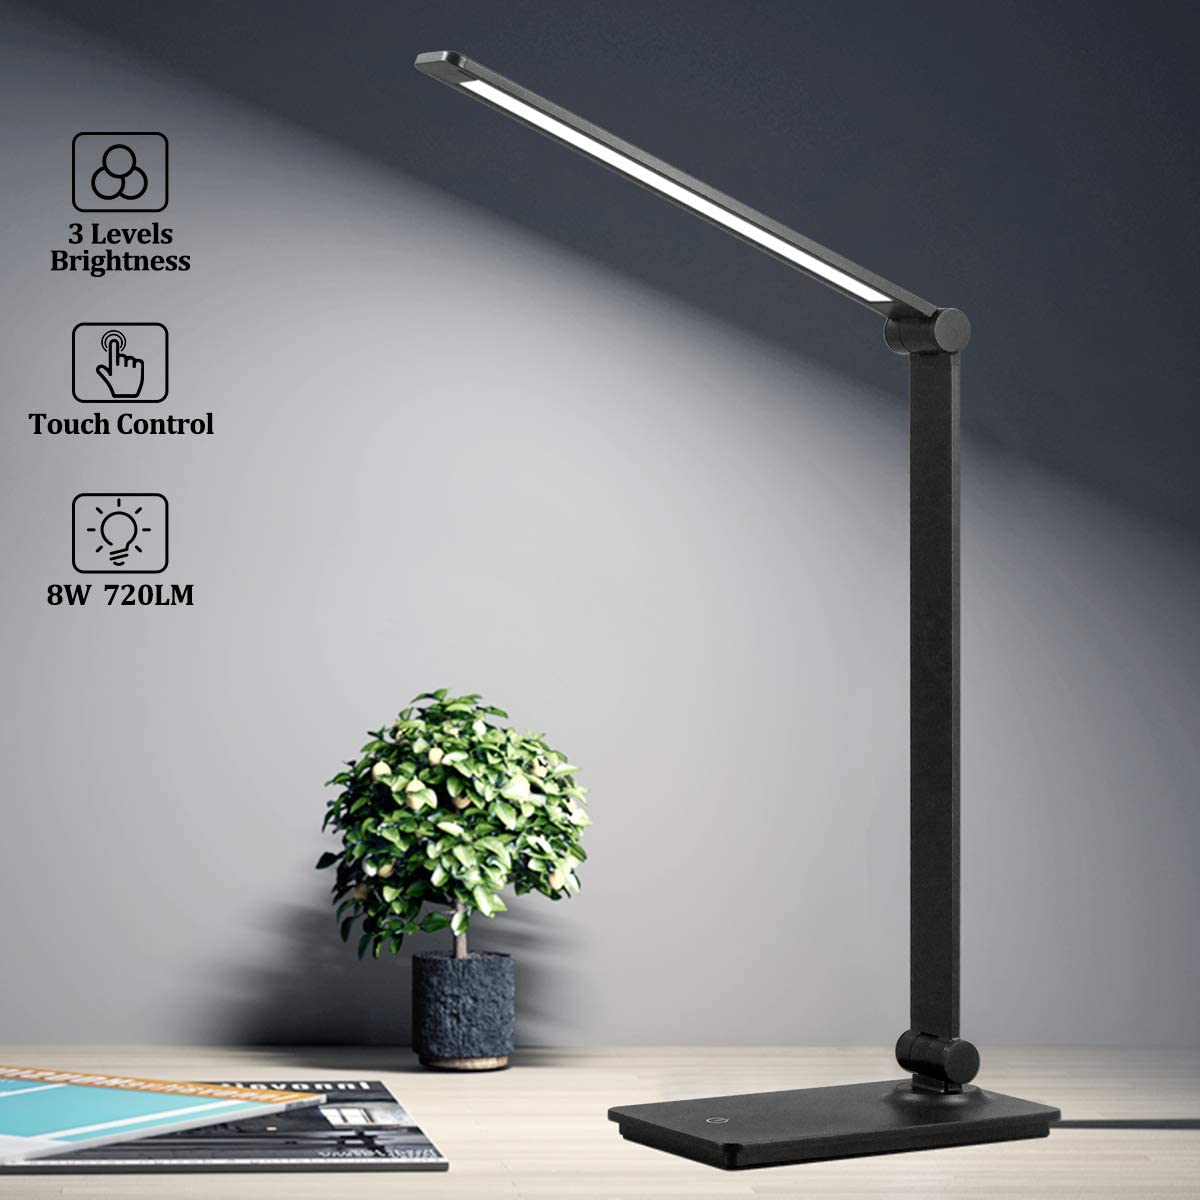 LED Desk Lamp, Touch Control Desk Lamp with 3 Levels Brightness, Dimmable Office Lamp with Adjustable Arm, Foldable Table Desk Lamp for Table Bedroom Bedside Office Study, 5000K, 8W, Black